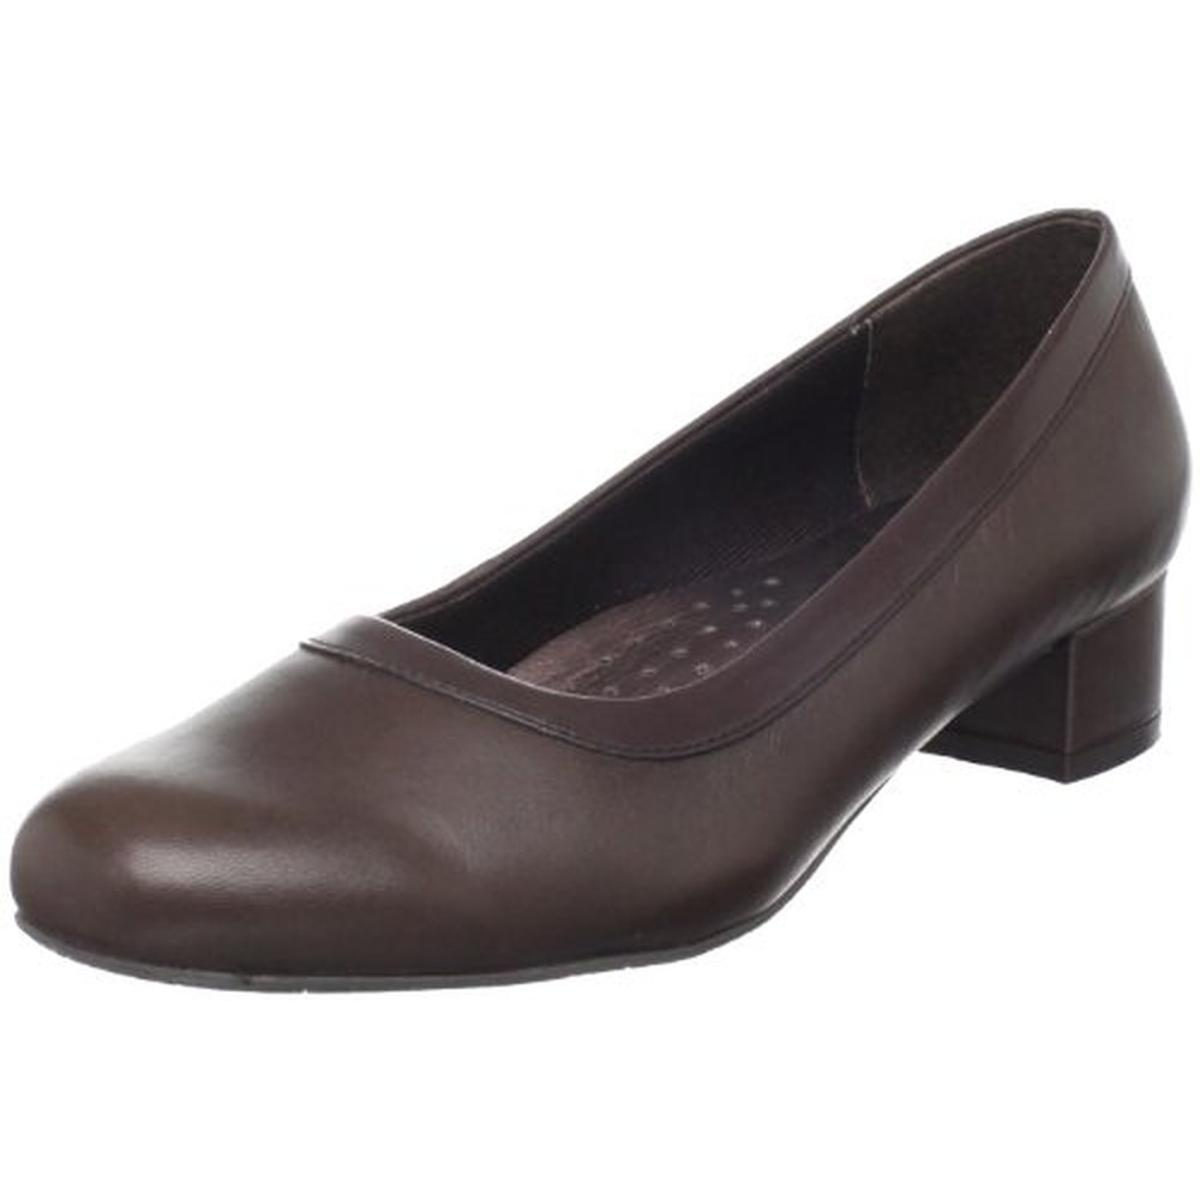 Trotters Womens Dora Leather Slip On Pumps